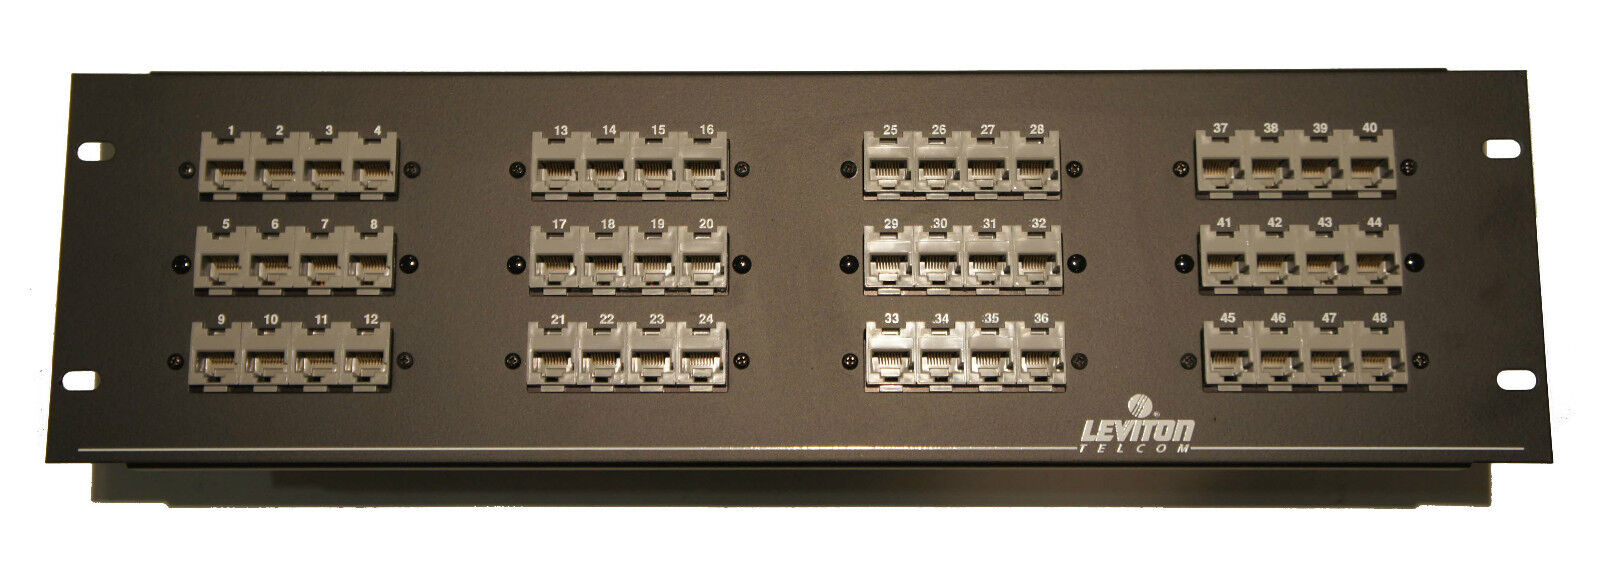 LEVITON Telcom Cat 49235B48 49235-B48 Infotap Patch Panel 48 Port ...